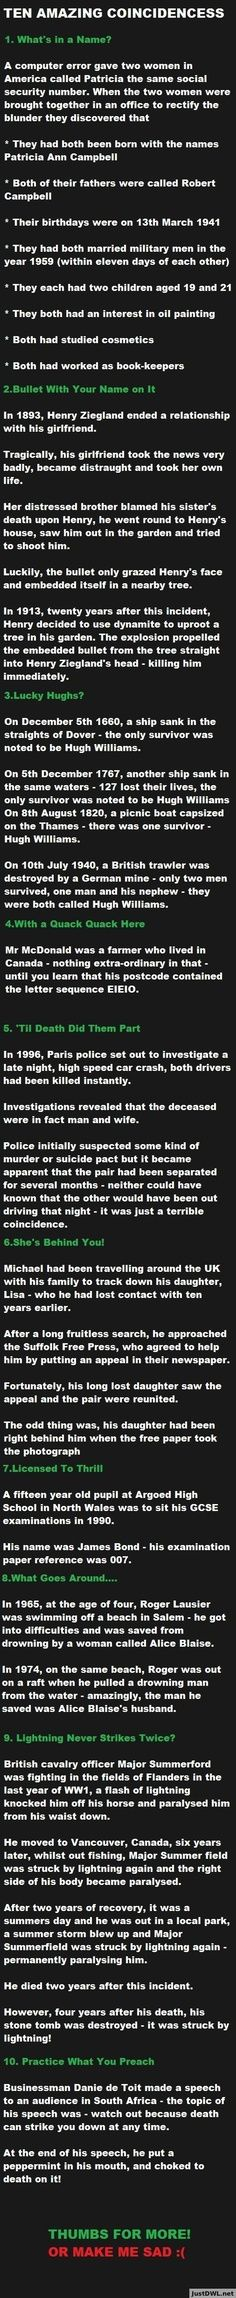 10 Amazing Coincidences